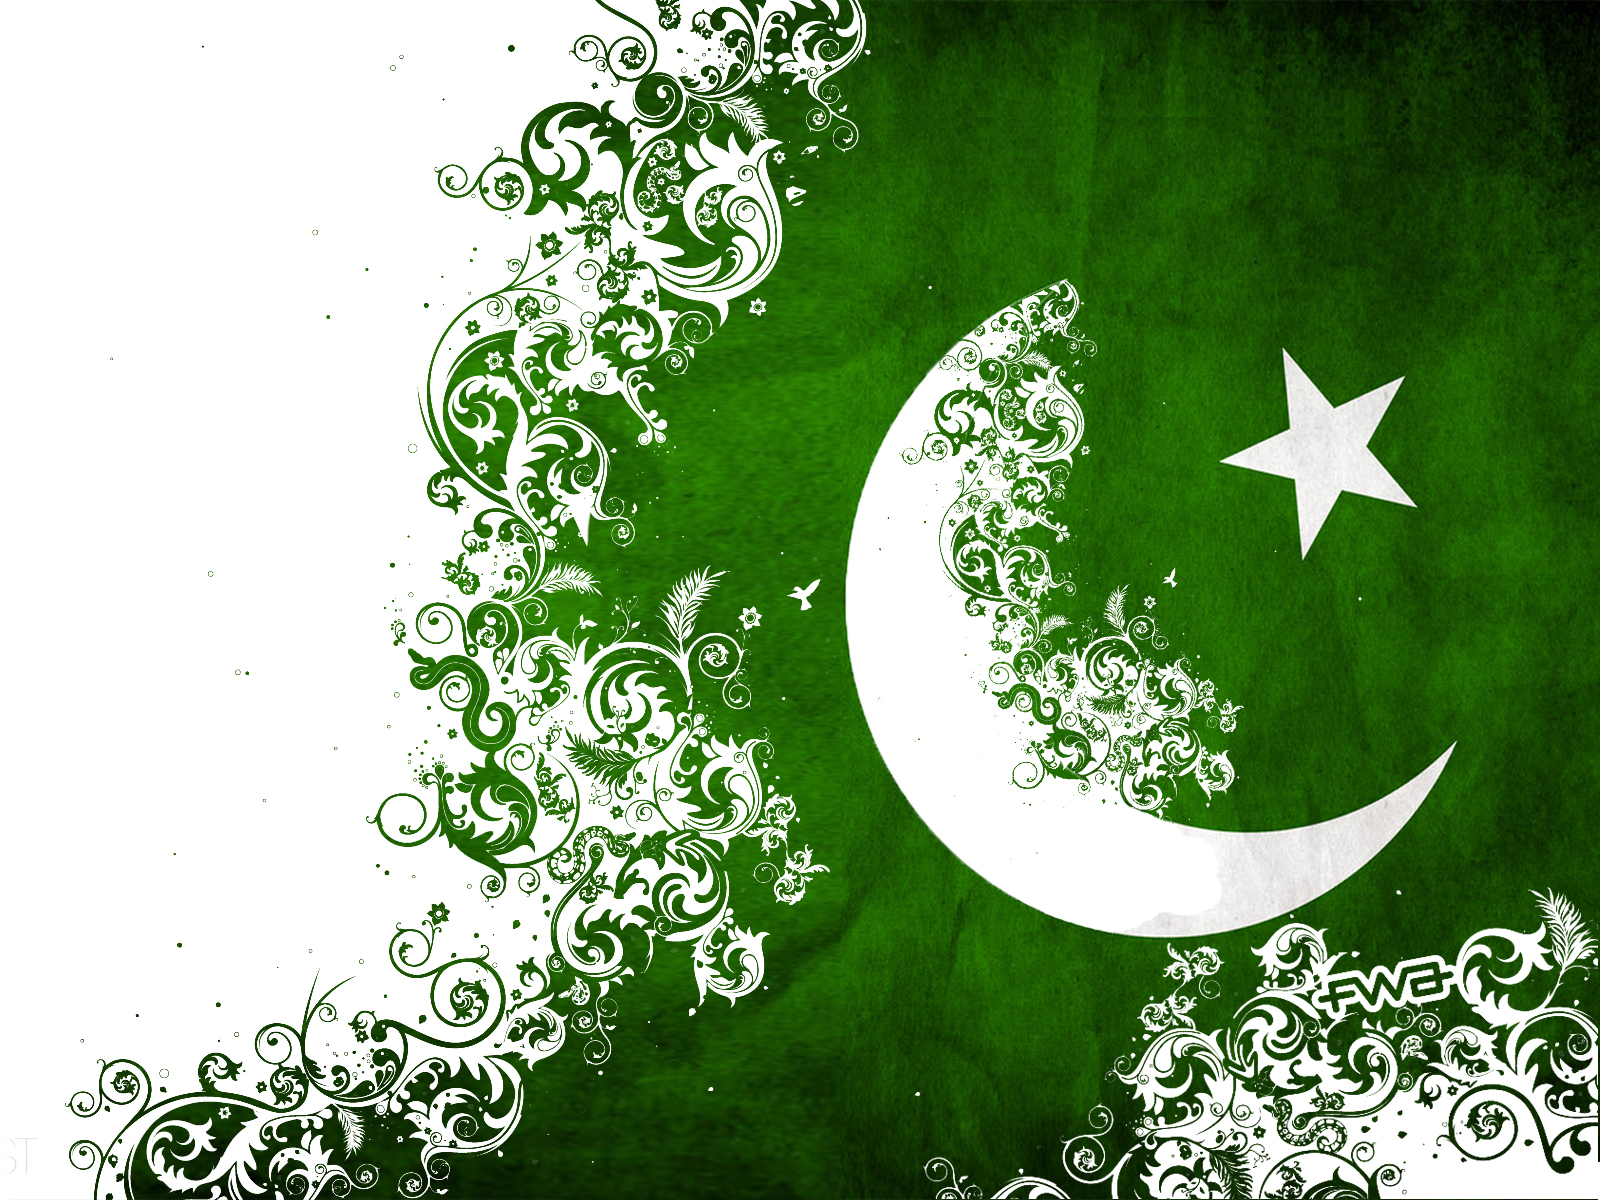 Download Pakistan Wallpapers With Complete Pakistani 1600x1200